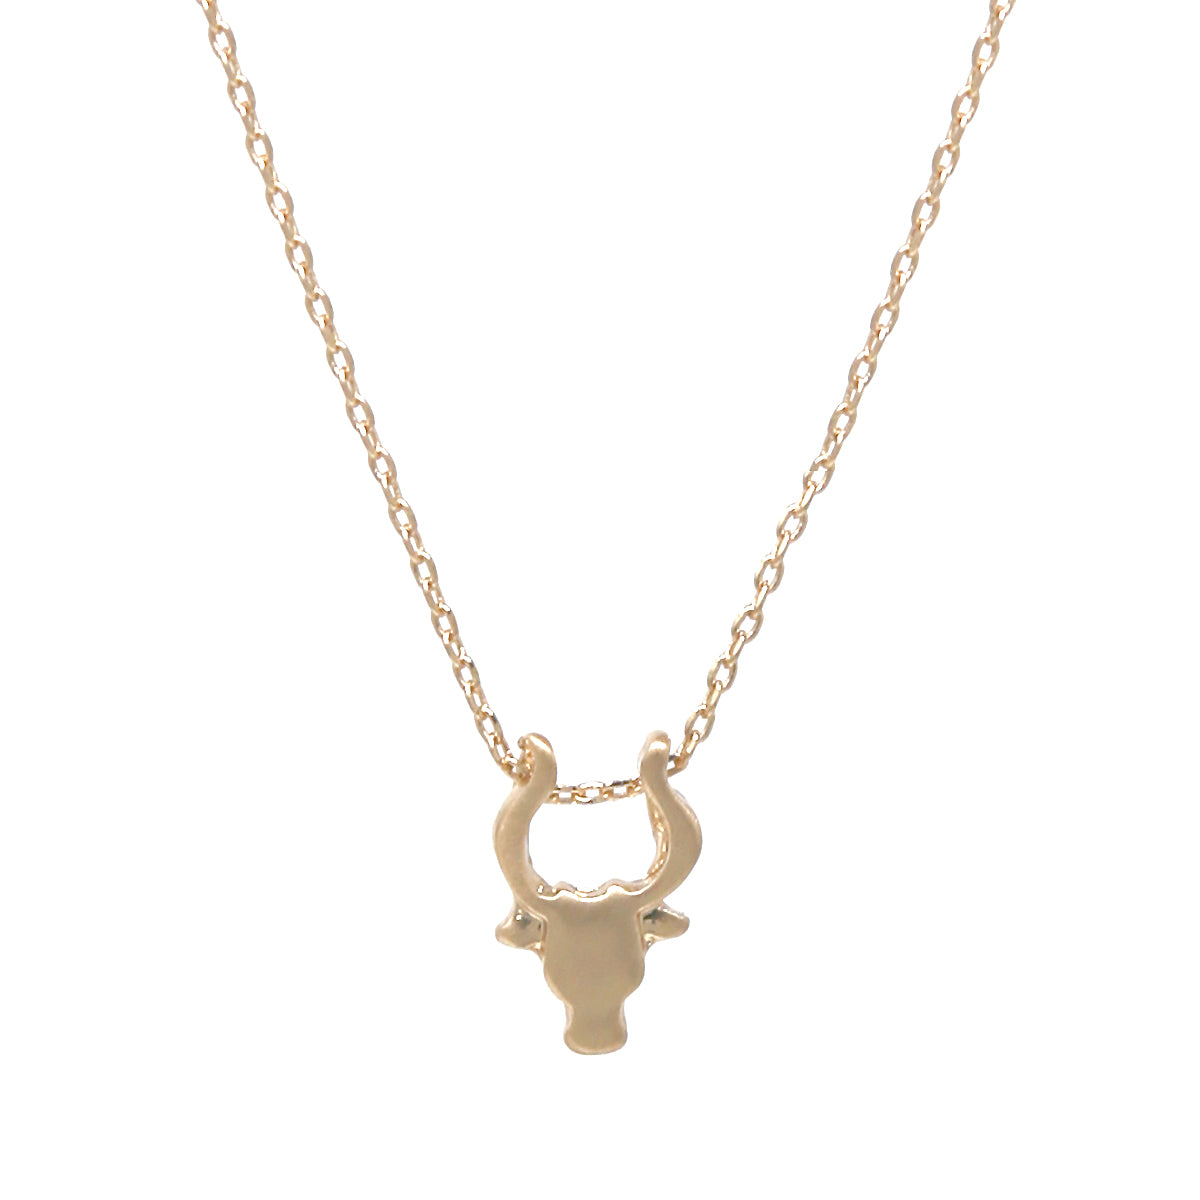 Buffalo Head Satin Finished Pendant Simple Chain Short Necklace